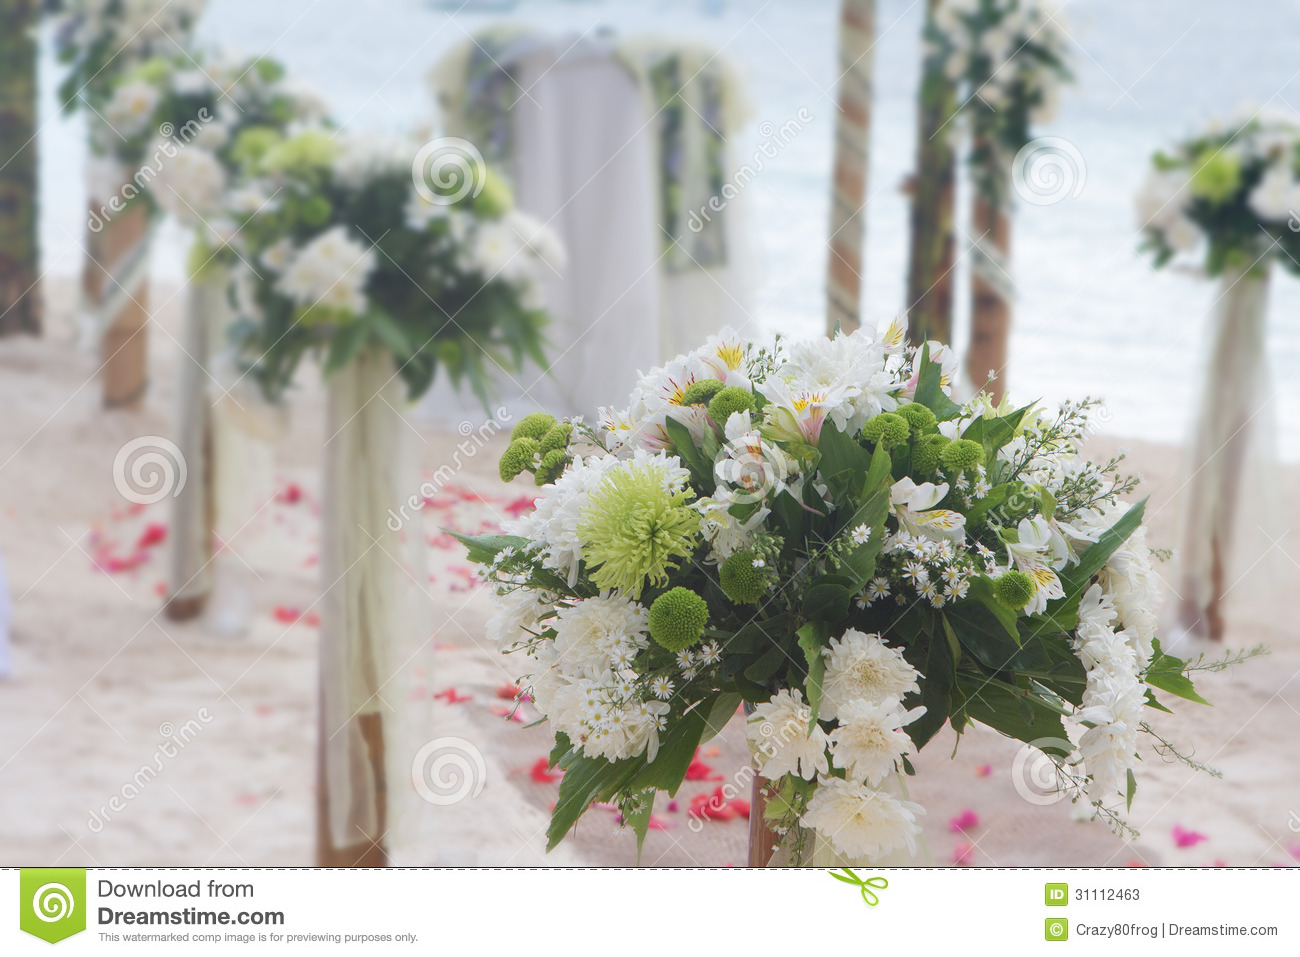 wedding flower arch post and decoration on beach stock image image of fresh flowers 31112463. Black Bedroom Furniture Sets. Home Design Ideas